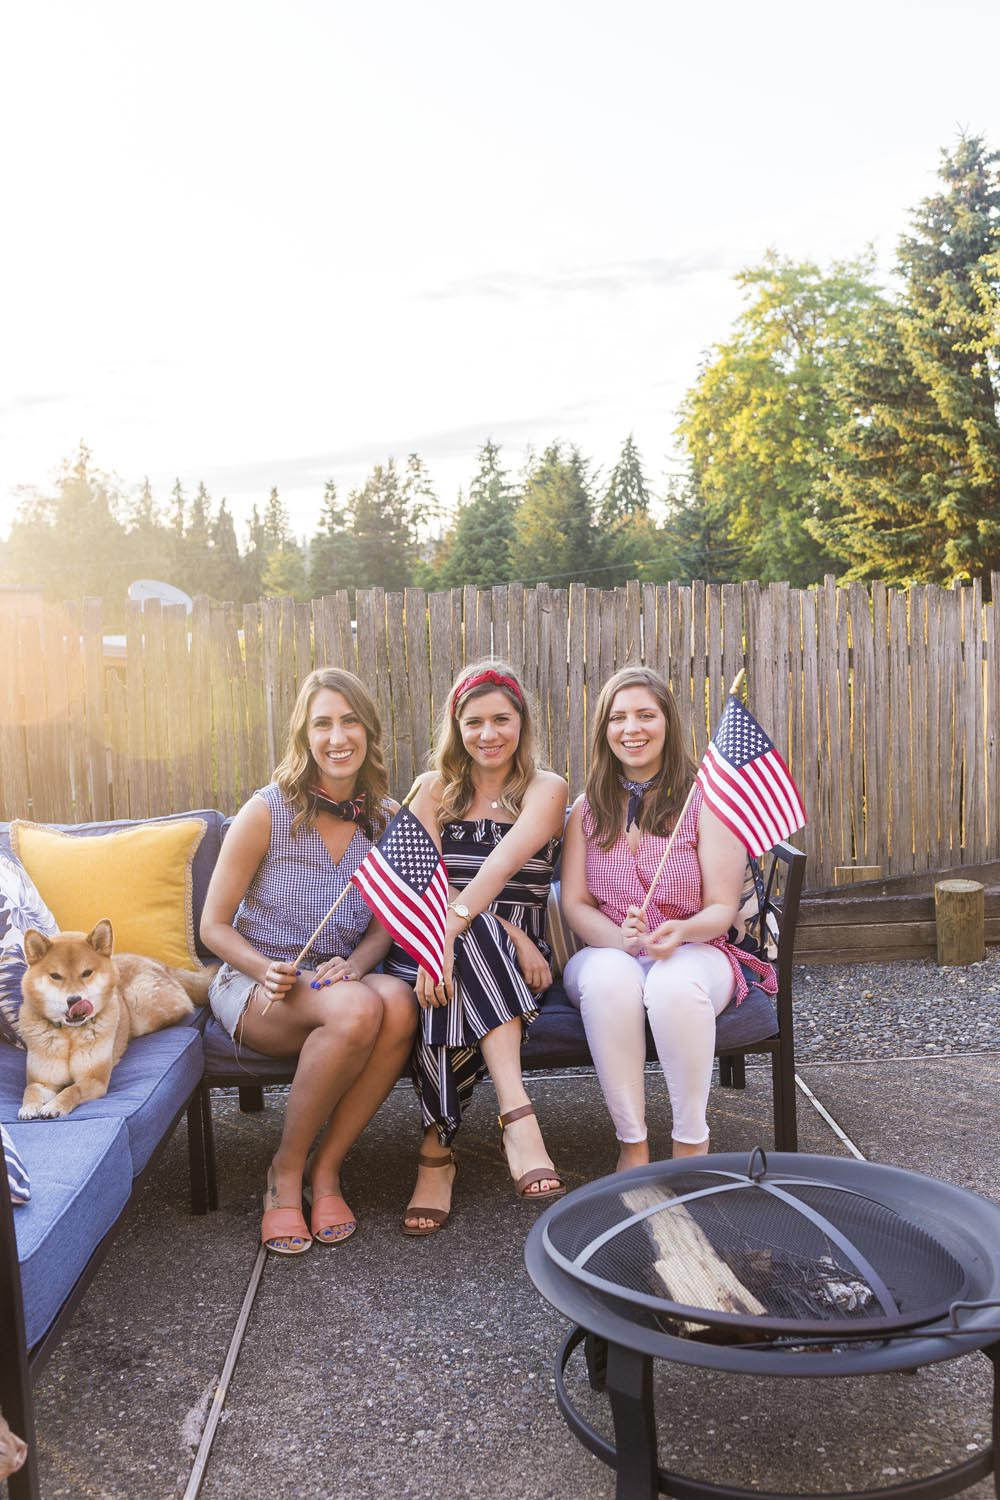 How to Host a 4th of July Celebration with your BFFs - from outfit ideas to a food menu to drinks and more!